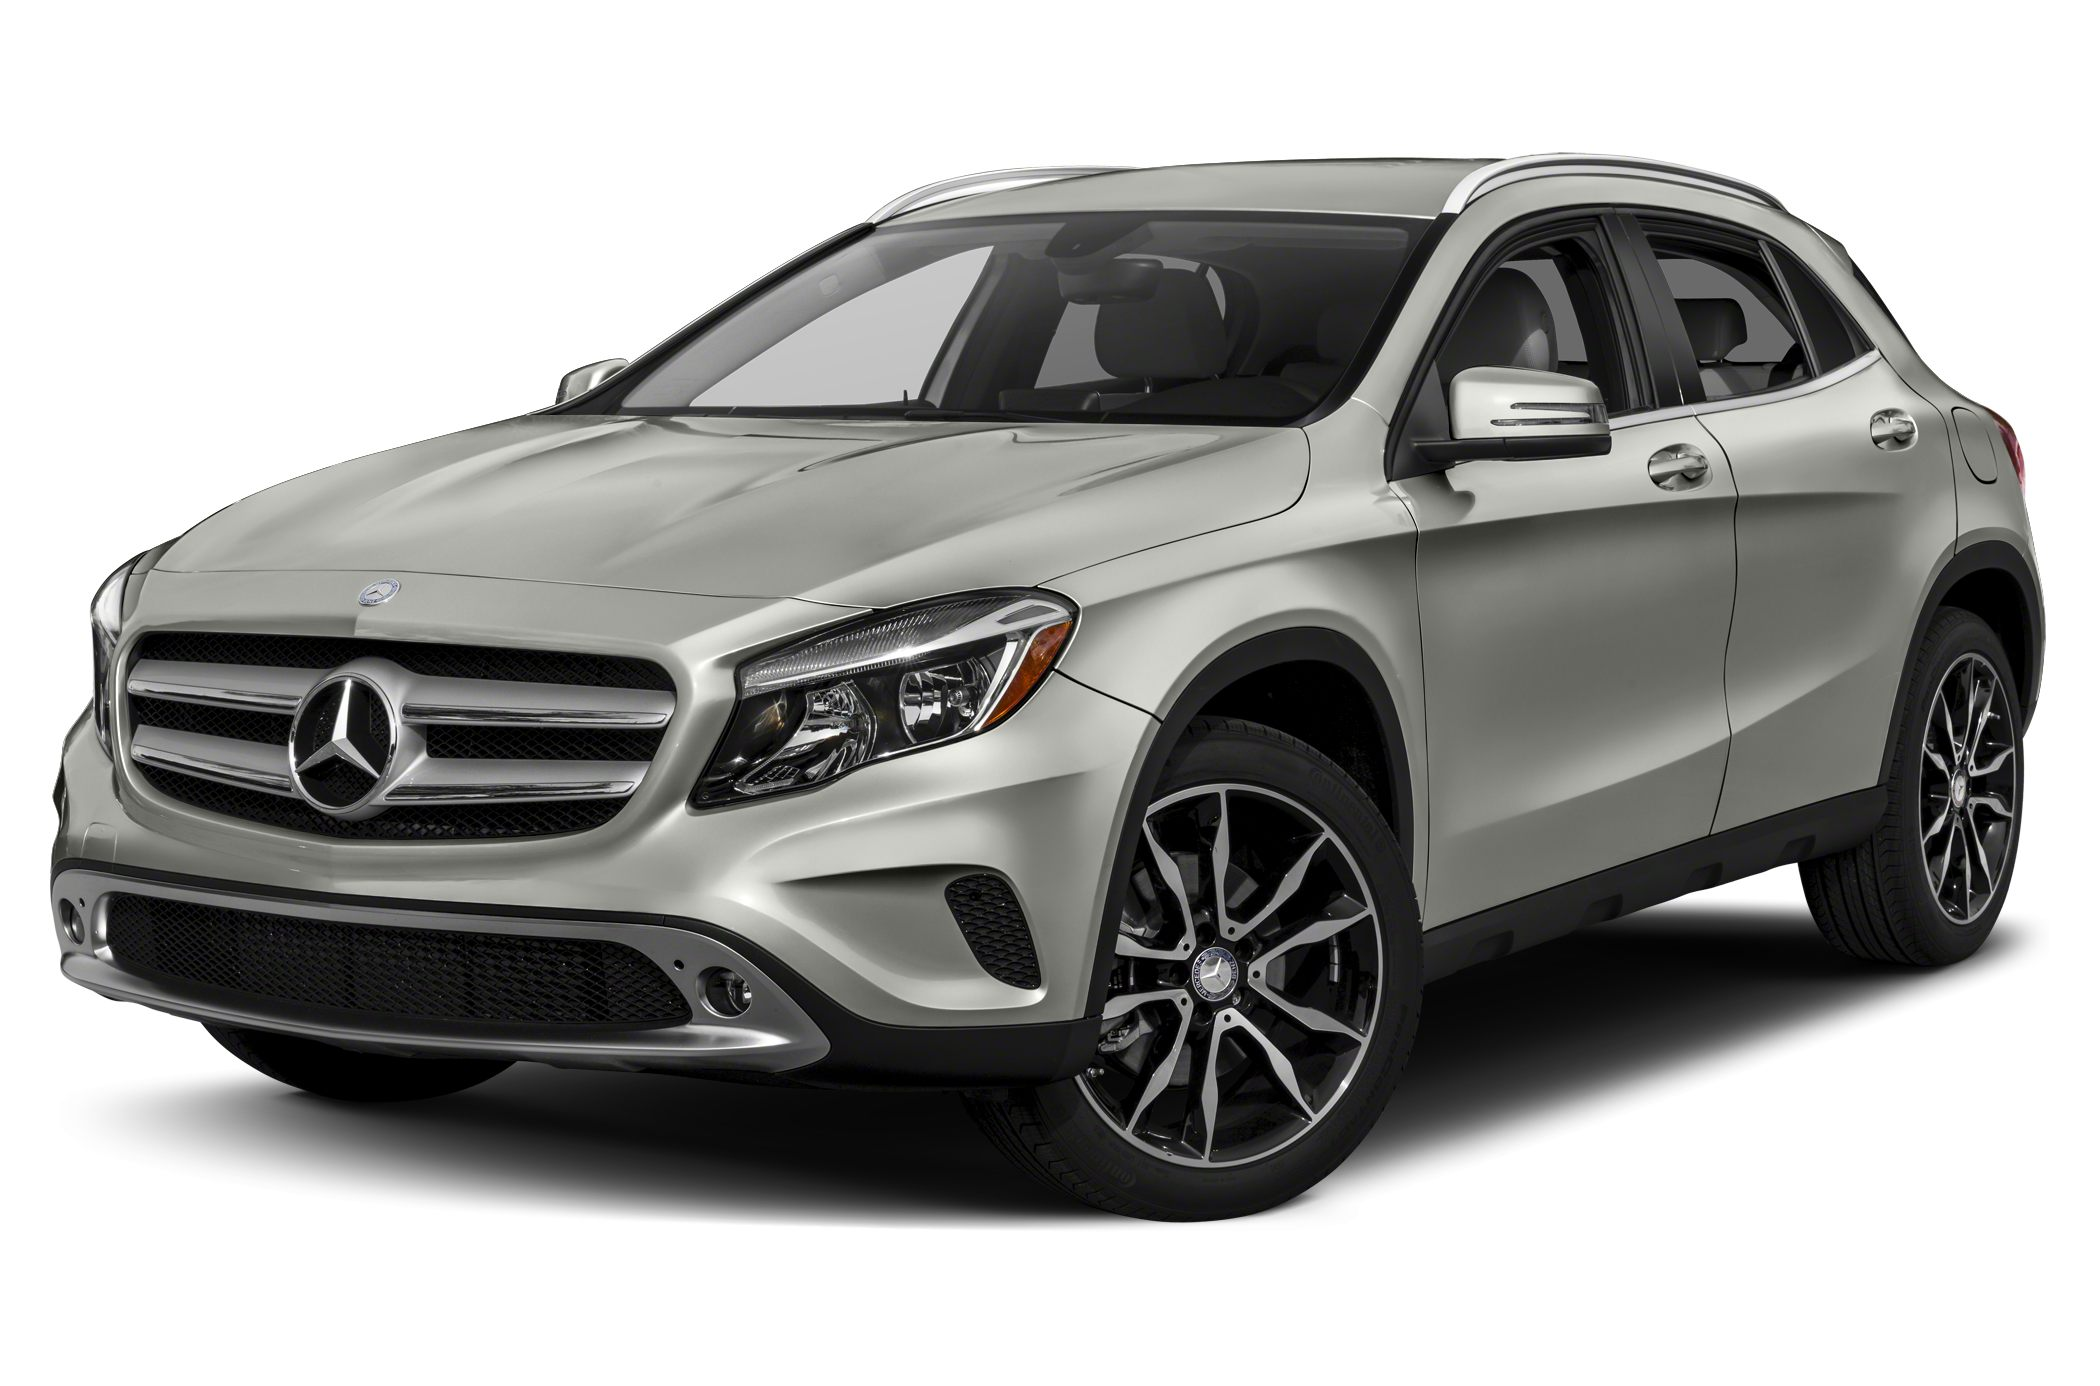 2021 Mercedes-Benz GLA-Class spied looking exactly as expected